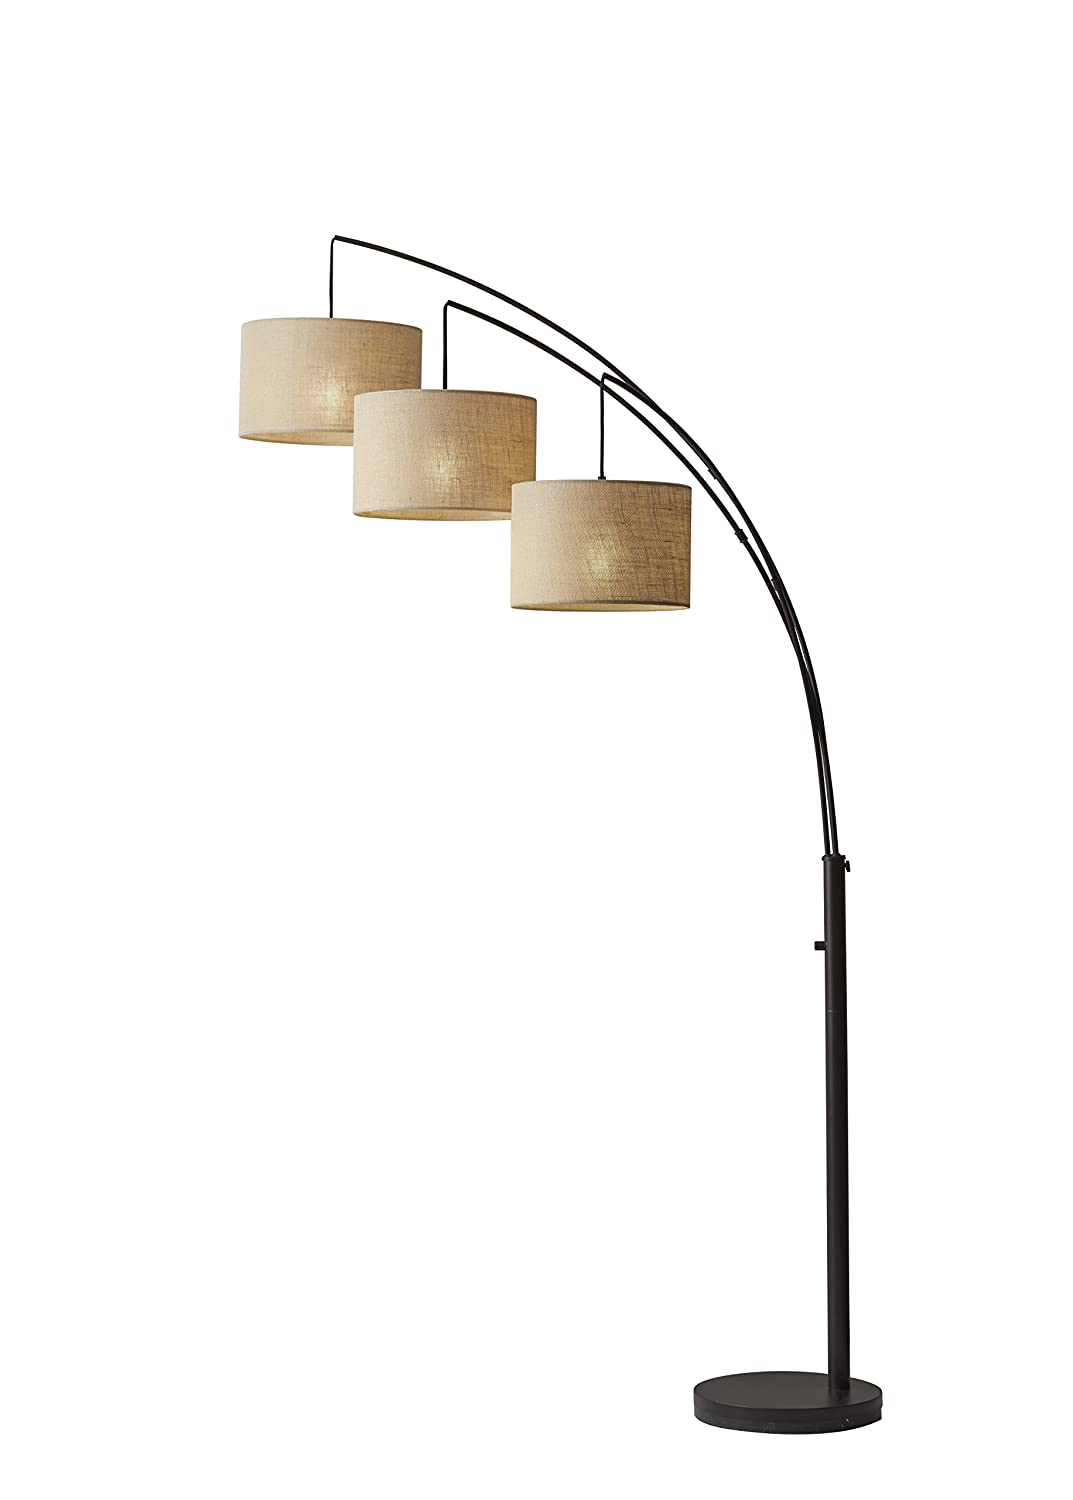 Adesso 4238-26 Trinity Arc Floor Lamp Antique Bronze Finish, Beige Burlap Lamp. Home Decor Lamps and Light Fixtures, 82